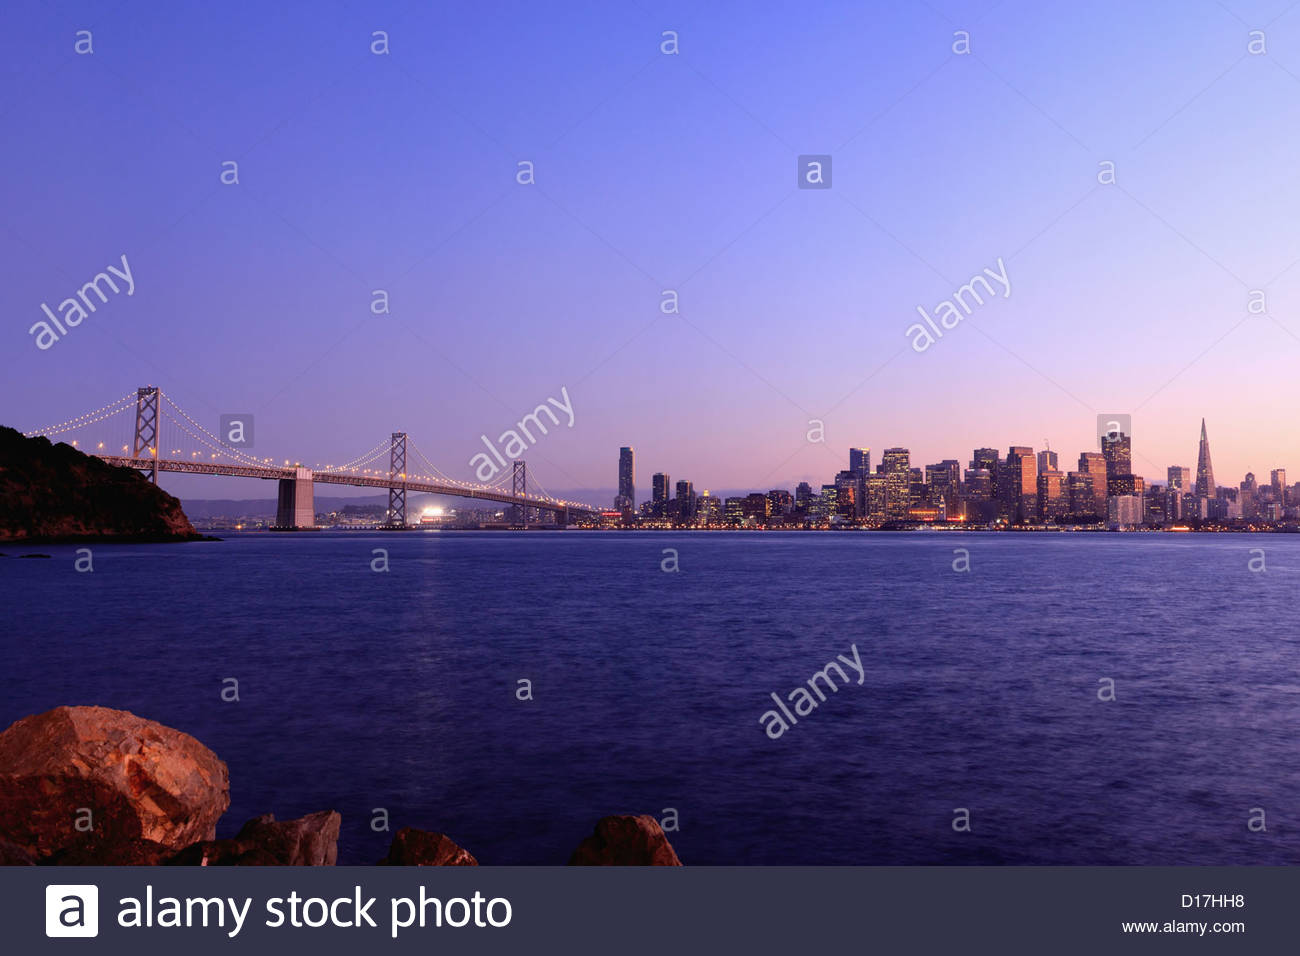 Urban skyline and bridge with river - Stock Image